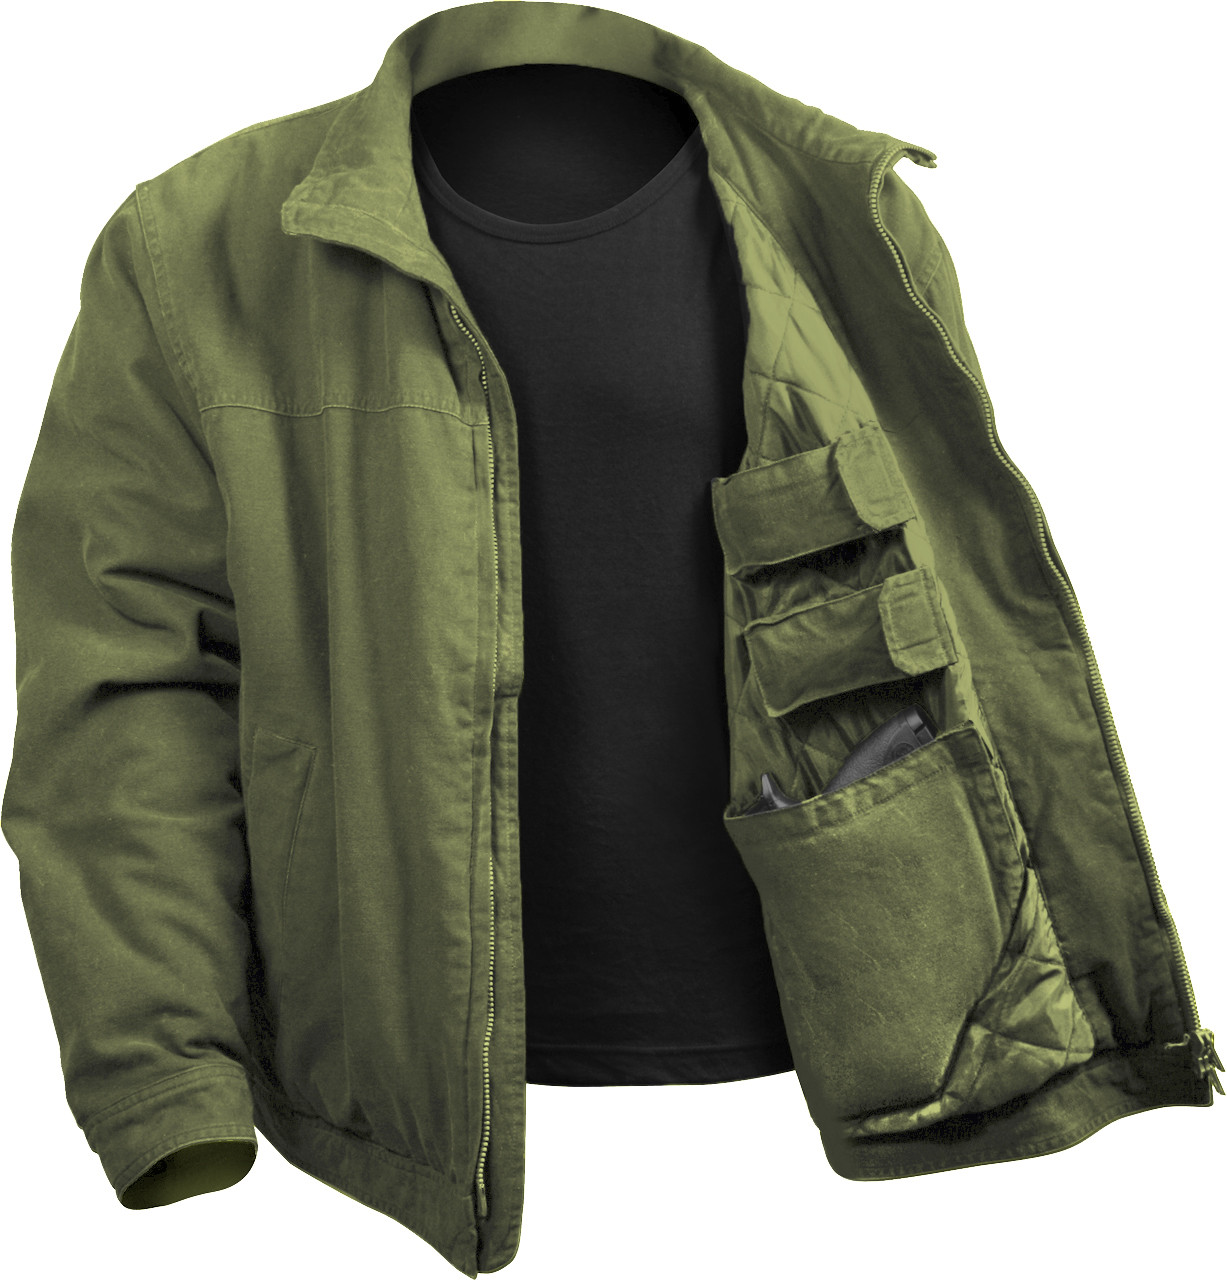 Olive Drab Military Concealed Carry 3 Season Tactical Jacket 80f495f6c73